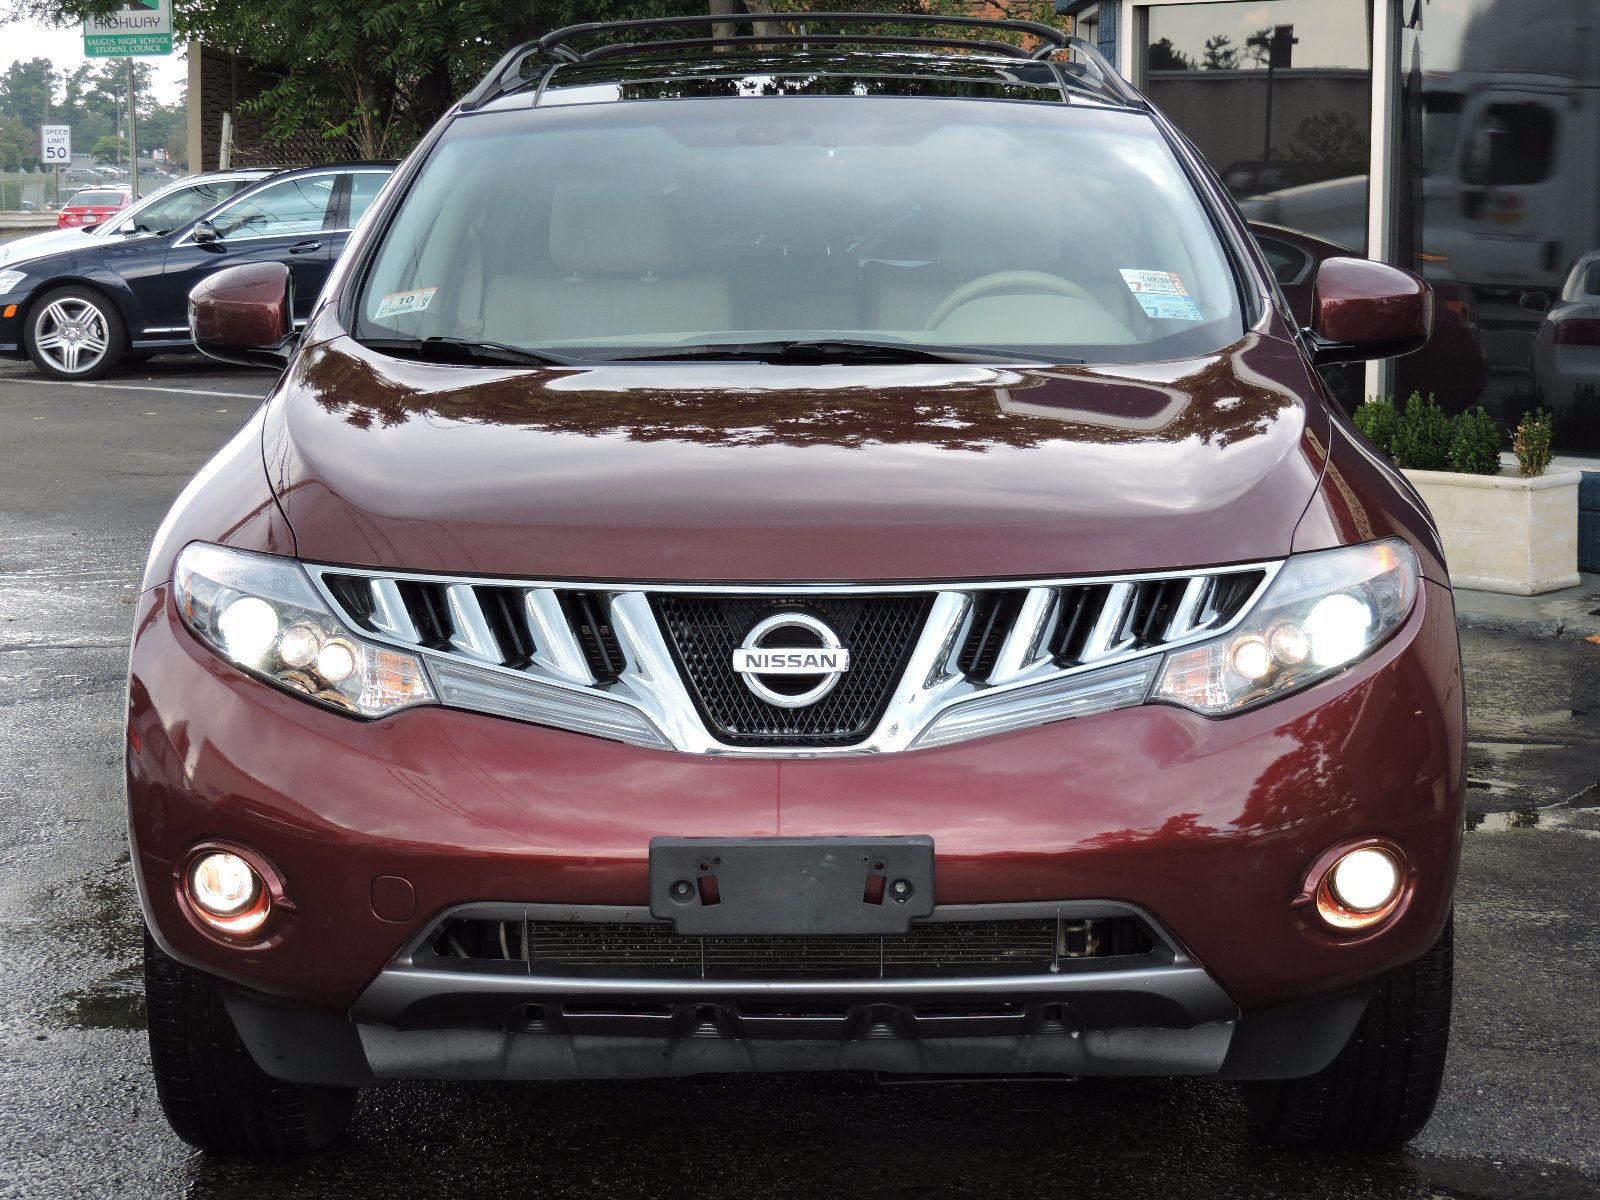 2010 Nissan Murano LE - All Wheel Drive